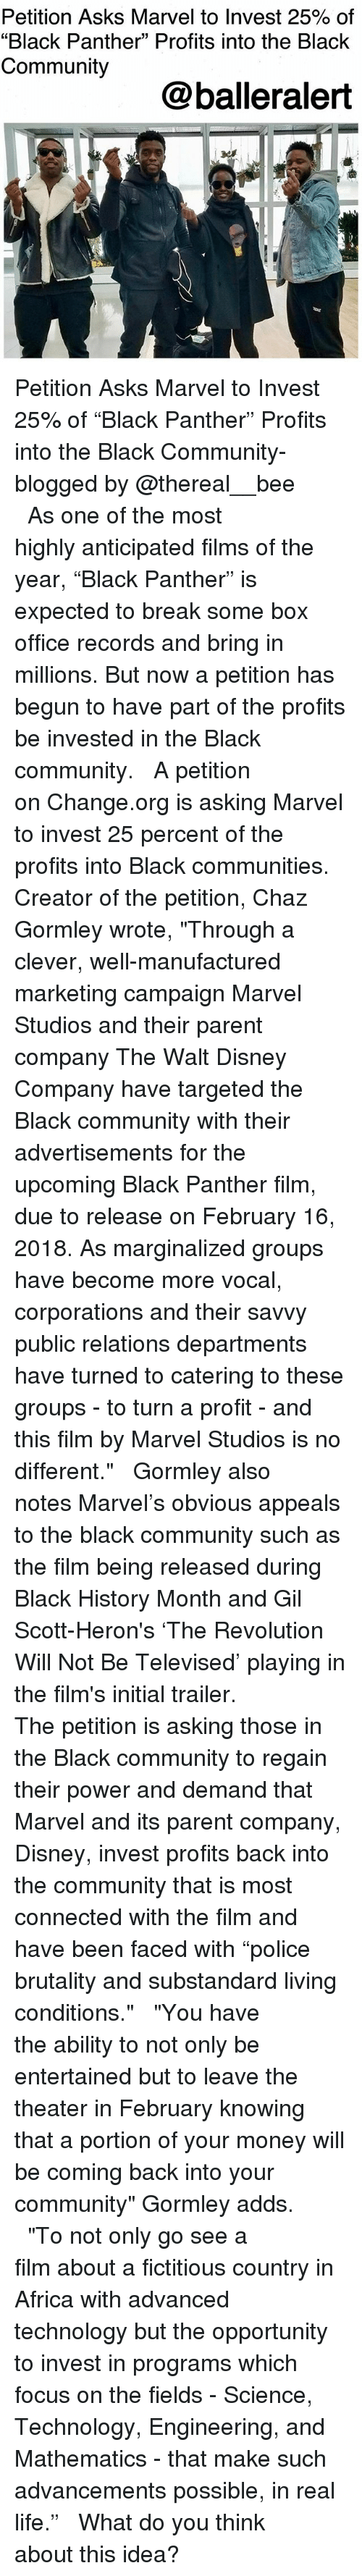 "Thereal: Petition Asks Marvel to Invest 25% of  ""Black Panther"" Profits into the Black  Community  @balleralert Petition Asks Marvel to Invest 25% of ""Black Panther"" Profits into the Black Community-blogged by @thereal__bee ⠀⠀⠀⠀⠀⠀⠀⠀⠀ ⠀⠀ As one of the most highly anticipated films of the year, ""Black Panther"" is expected to break some box office records and bring in millions. But now a petition has begun to have part of the profits be invested in the Black community. ⠀⠀⠀⠀⠀⠀⠀⠀⠀ ⠀⠀ A petition on Change.org is asking Marvel to invest 25 percent of the profits into Black communities. Creator of the petition, Chaz Gormley wrote, ""Through a clever, well-manufactured marketing campaign Marvel Studios and their parent company The Walt Disney Company have targeted the Black community with their advertisements for the upcoming Black Panther film, due to release on February 16, 2018. As marginalized groups have become more vocal, corporations and their savvy public relations departments have turned to catering to these groups - to turn a profit - and this film by Marvel Studios is no different."" ⠀⠀⠀⠀⠀⠀⠀⠀⠀ ⠀⠀ Gormley also notes Marvel's obvious appeals to the black community such as the film being released during Black History Month and Gil Scott-Heron's 'The Revolution Will Not Be Televised' playing in the film's initial trailer. ⠀⠀⠀⠀⠀⠀⠀⠀⠀ ⠀⠀ The petition is asking those in the Black community to regain their power and demand that Marvel and its parent company, Disney, invest profits back into the community that is most connected with the film and have been faced with ""police brutality and substandard living conditions."" ⠀⠀⠀⠀⠀⠀⠀⠀⠀ ⠀⠀ ""You have the ability to not only be entertained but to leave the theater in February knowing that a portion of your money will be coming back into your community"" Gormley adds. ⠀⠀⠀⠀⠀⠀⠀⠀⠀ ⠀⠀ ""To not only go see a film about a fictitious country in Africa with advanced technology but the opportunity to invest in programs which focus on the fields - Science, Technology, Engineering, and Mathematics - that make such advancements possible, in real life."" ⠀⠀⠀⠀⠀⠀⠀⠀⠀ ⠀⠀ What do you think about this idea?"